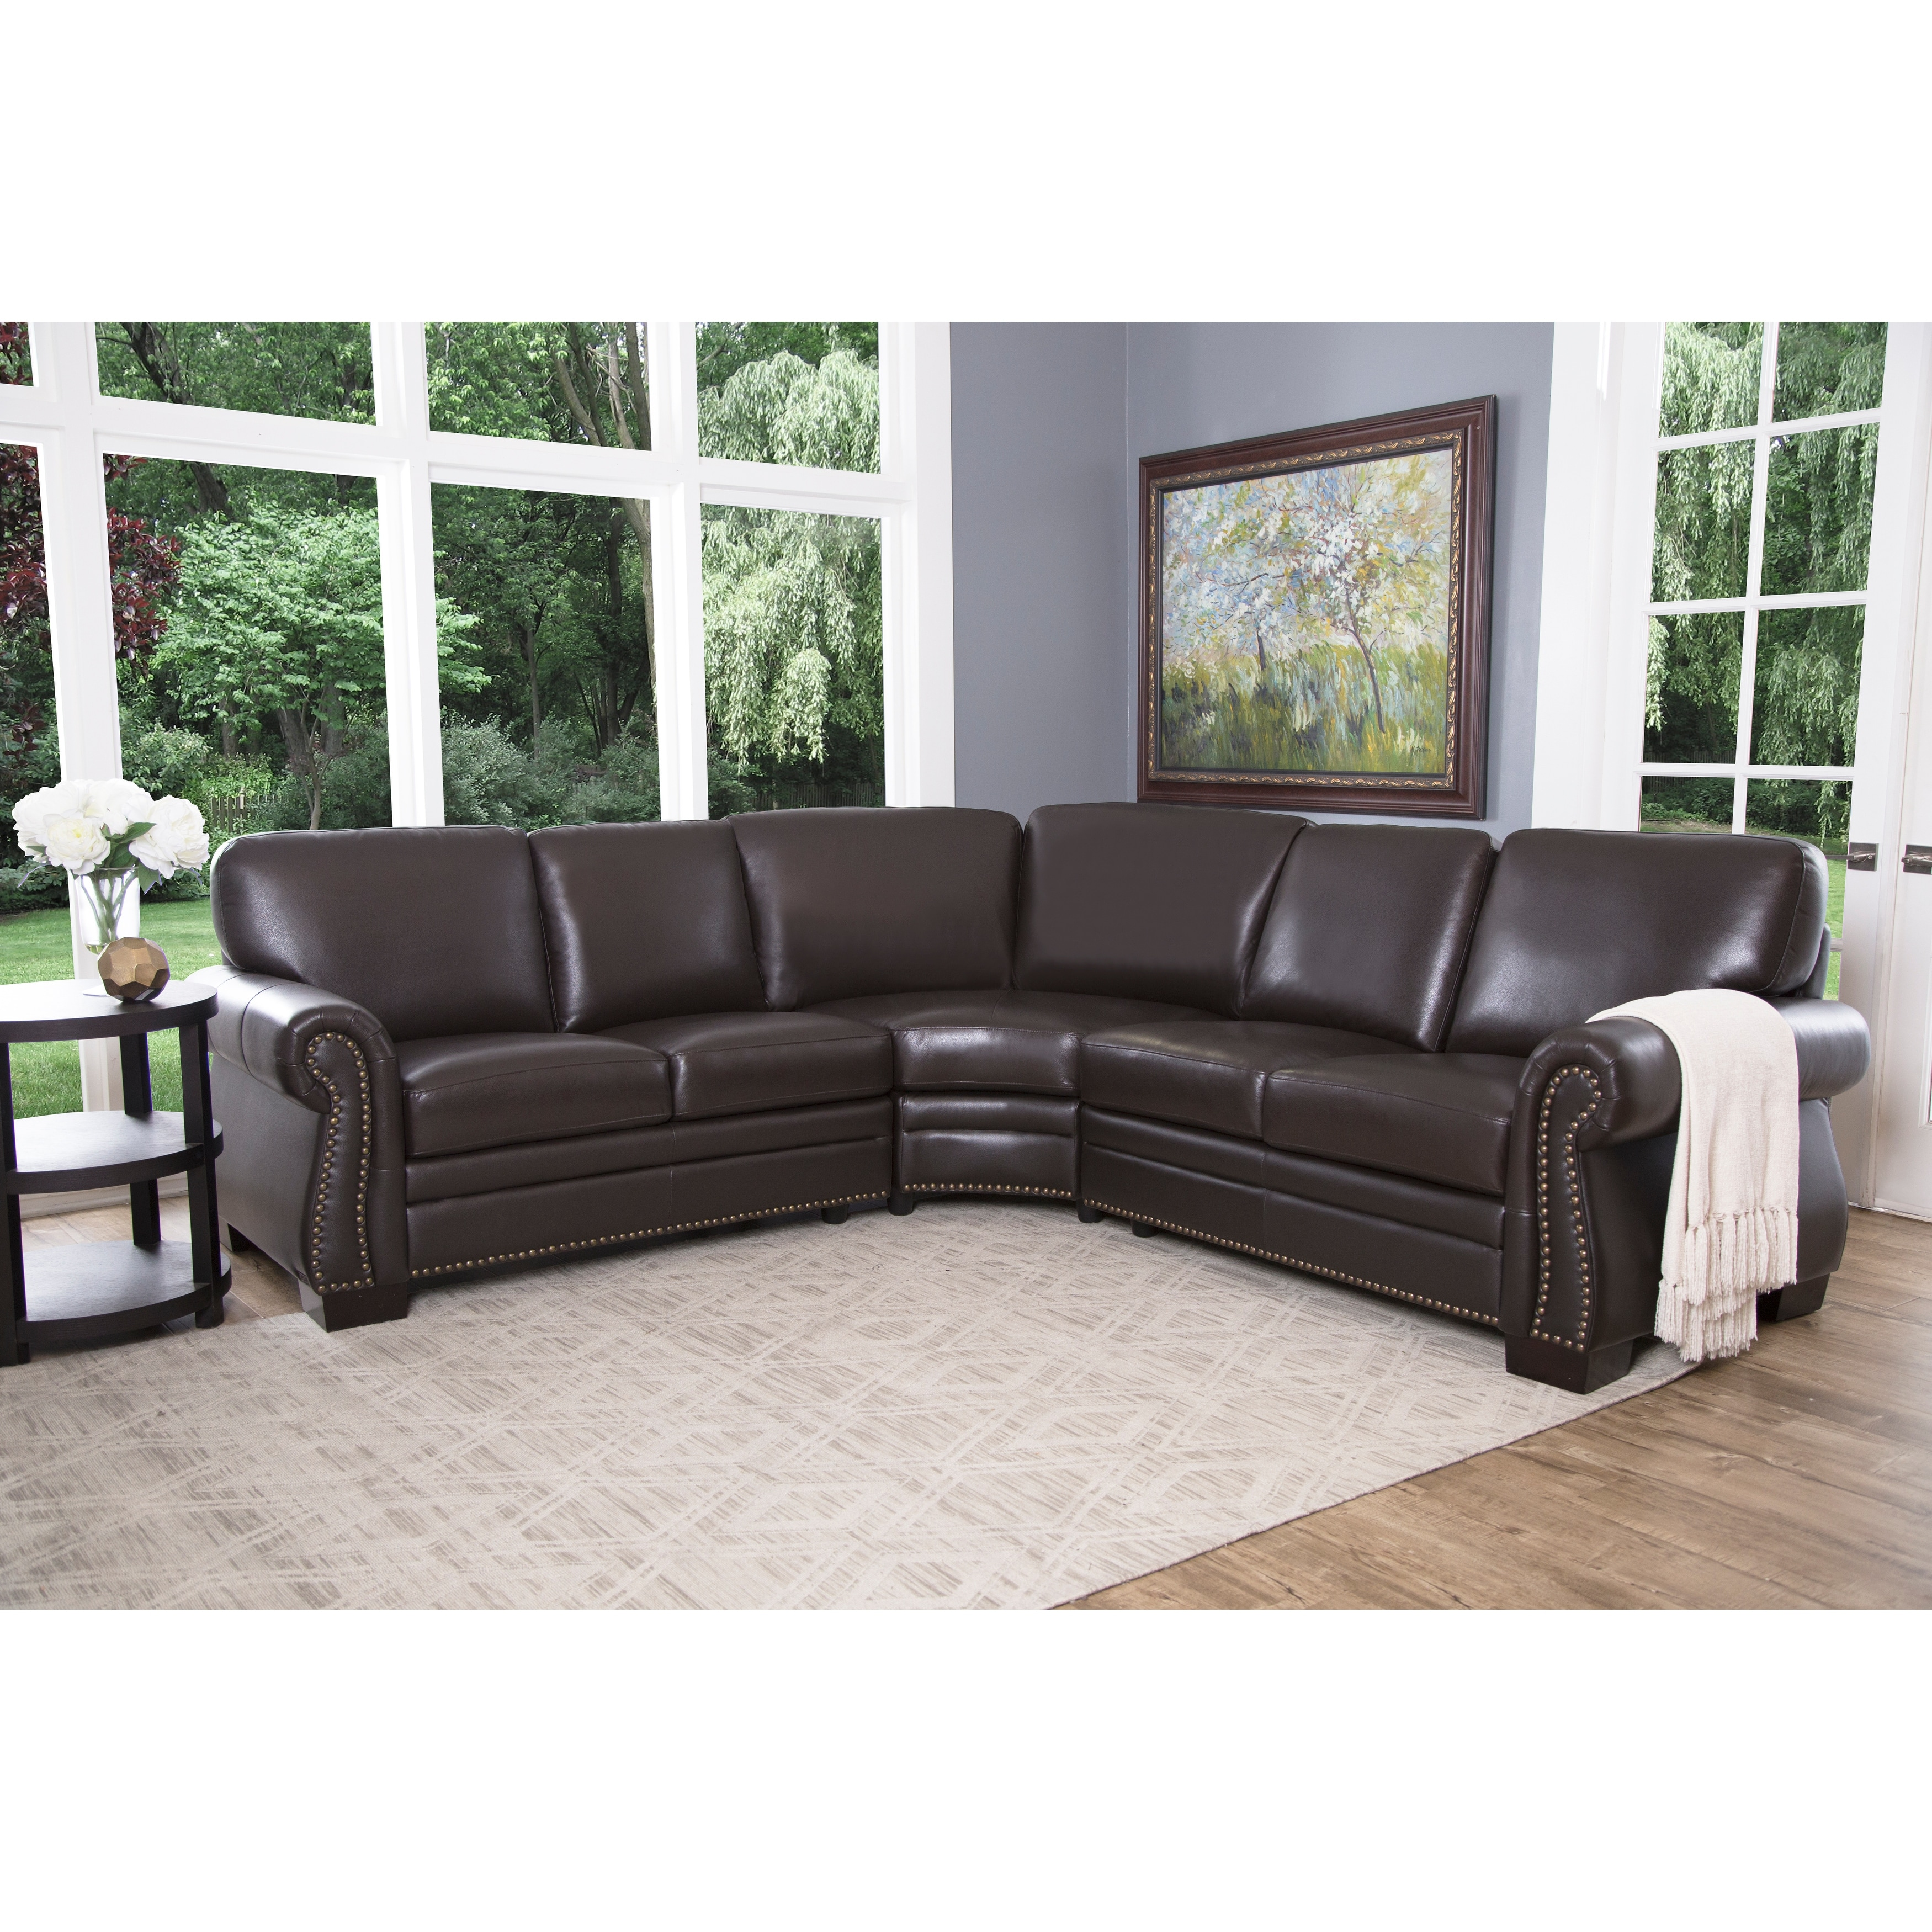 Abbyson Oxford Brown Top Grain Leather Sectional Sofa - On Sale - Overstock - 6475669